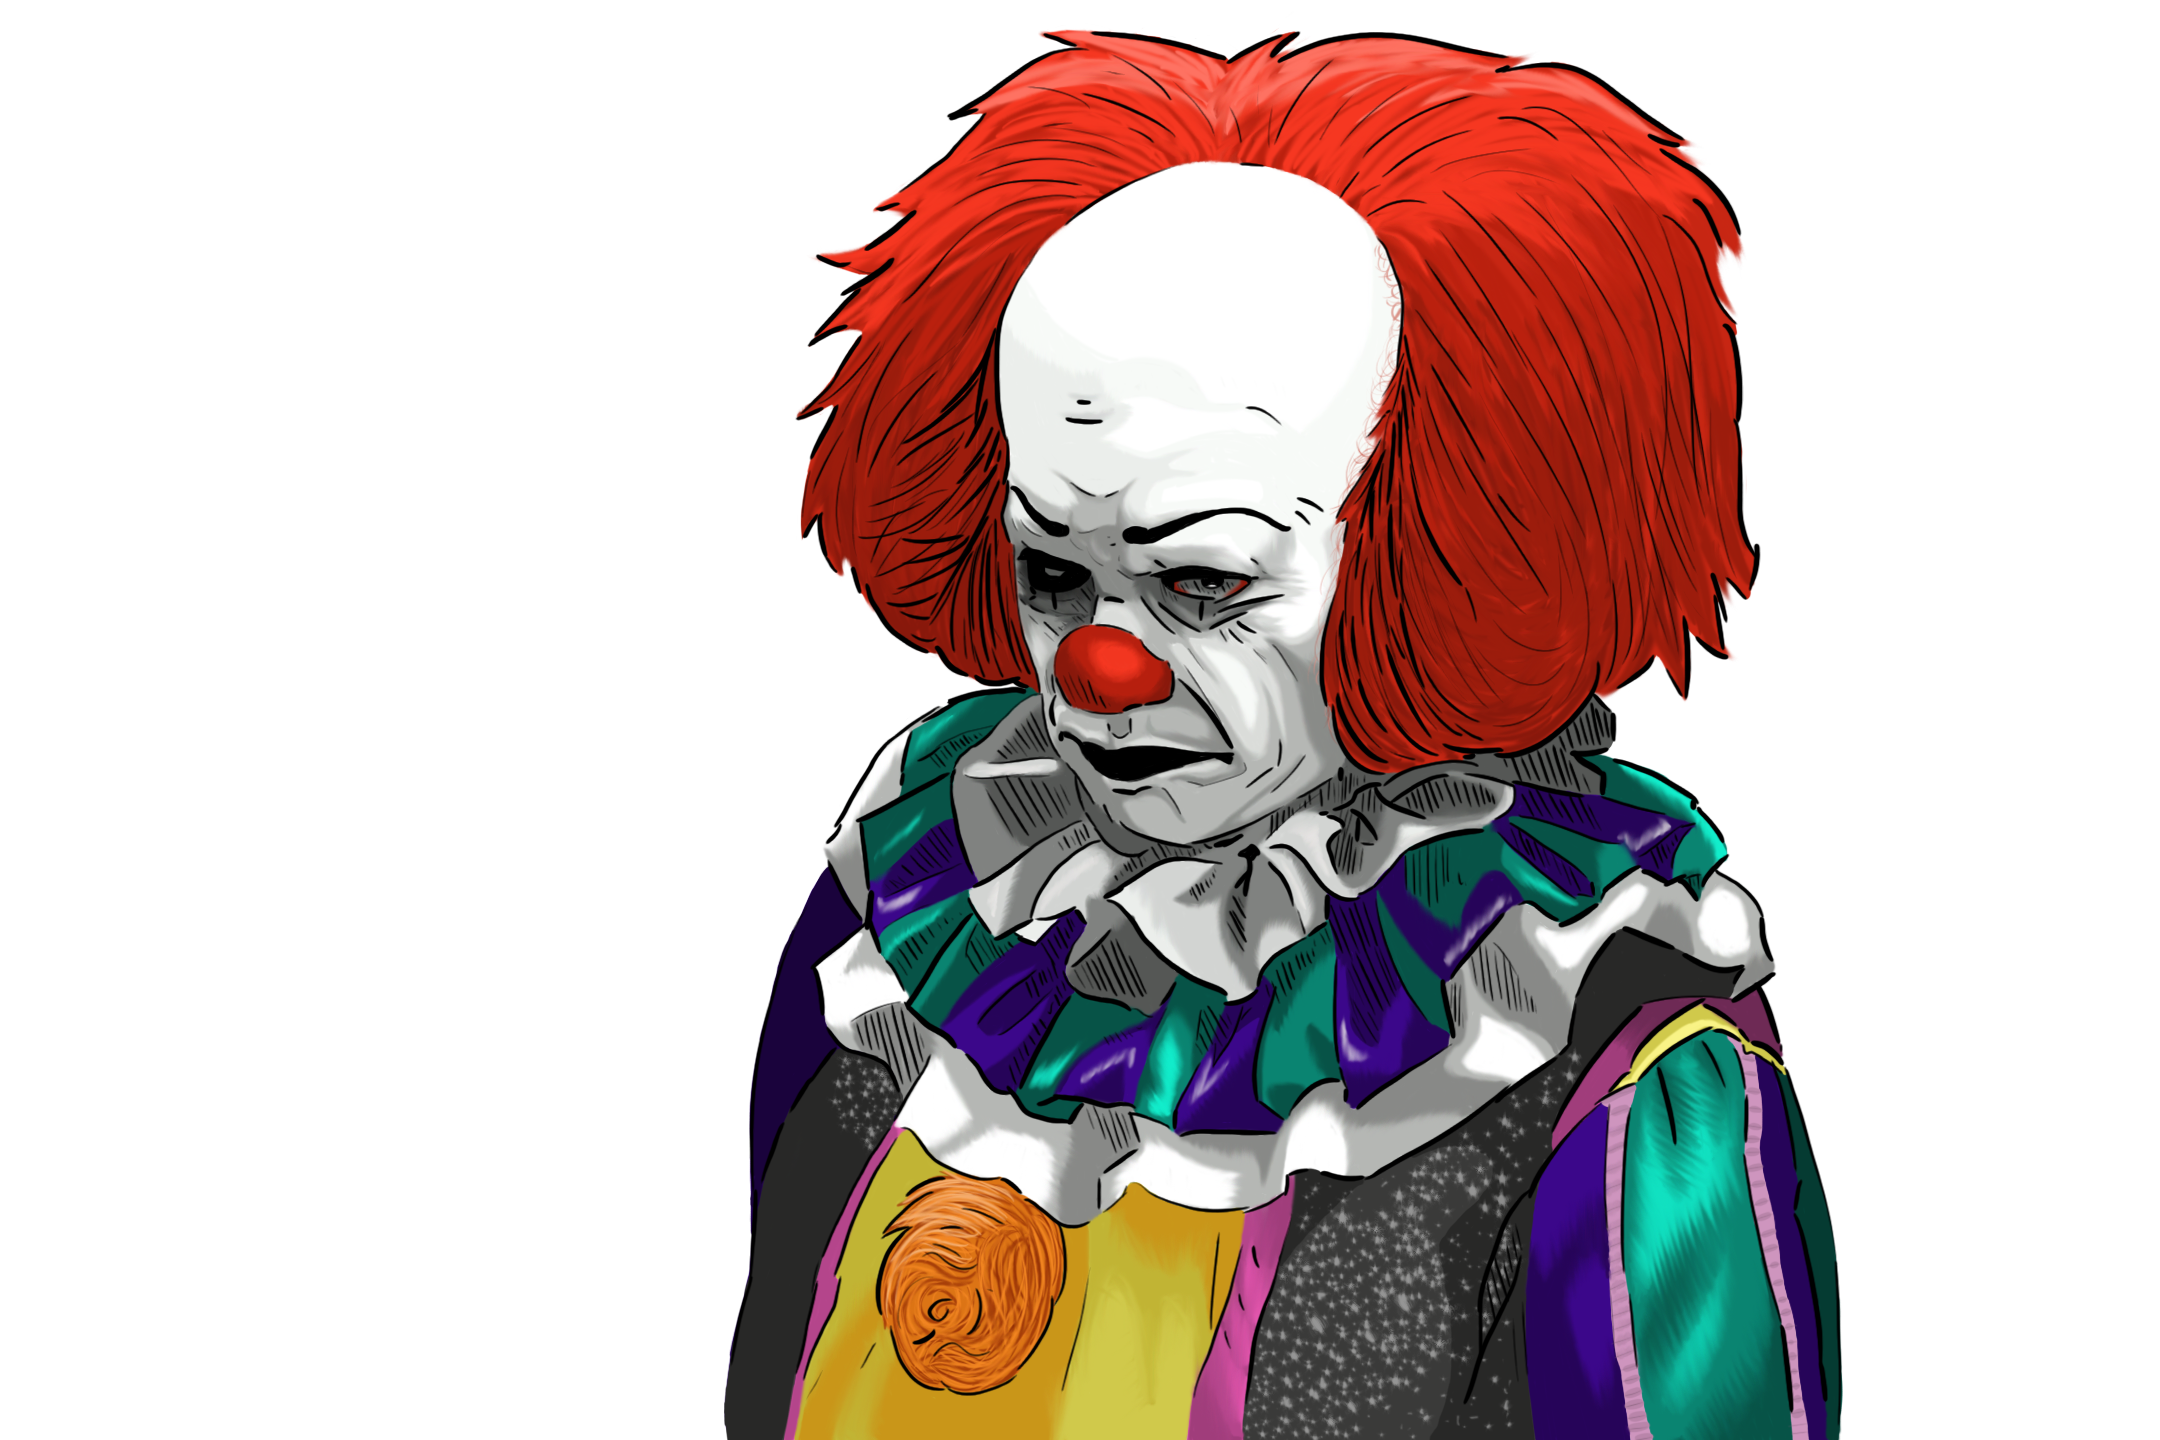 Pennywise the clown png. By omgxero on newgrounds